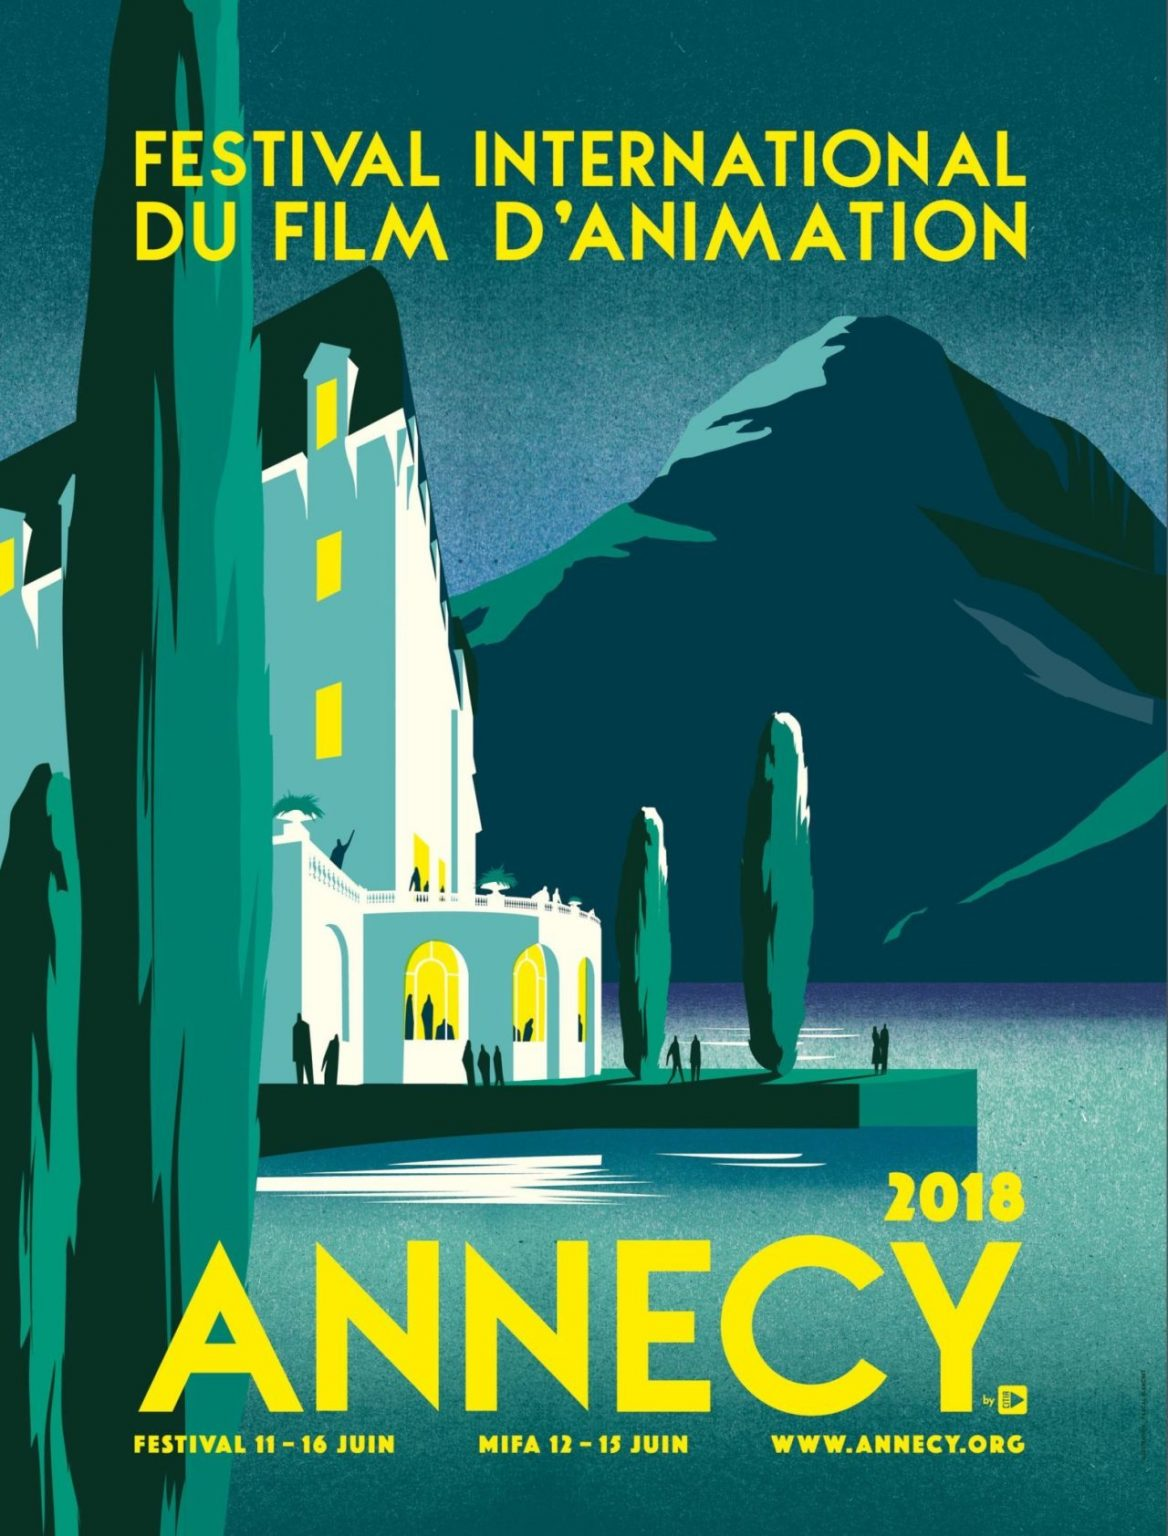 Annecy 2018 Poster.jpg